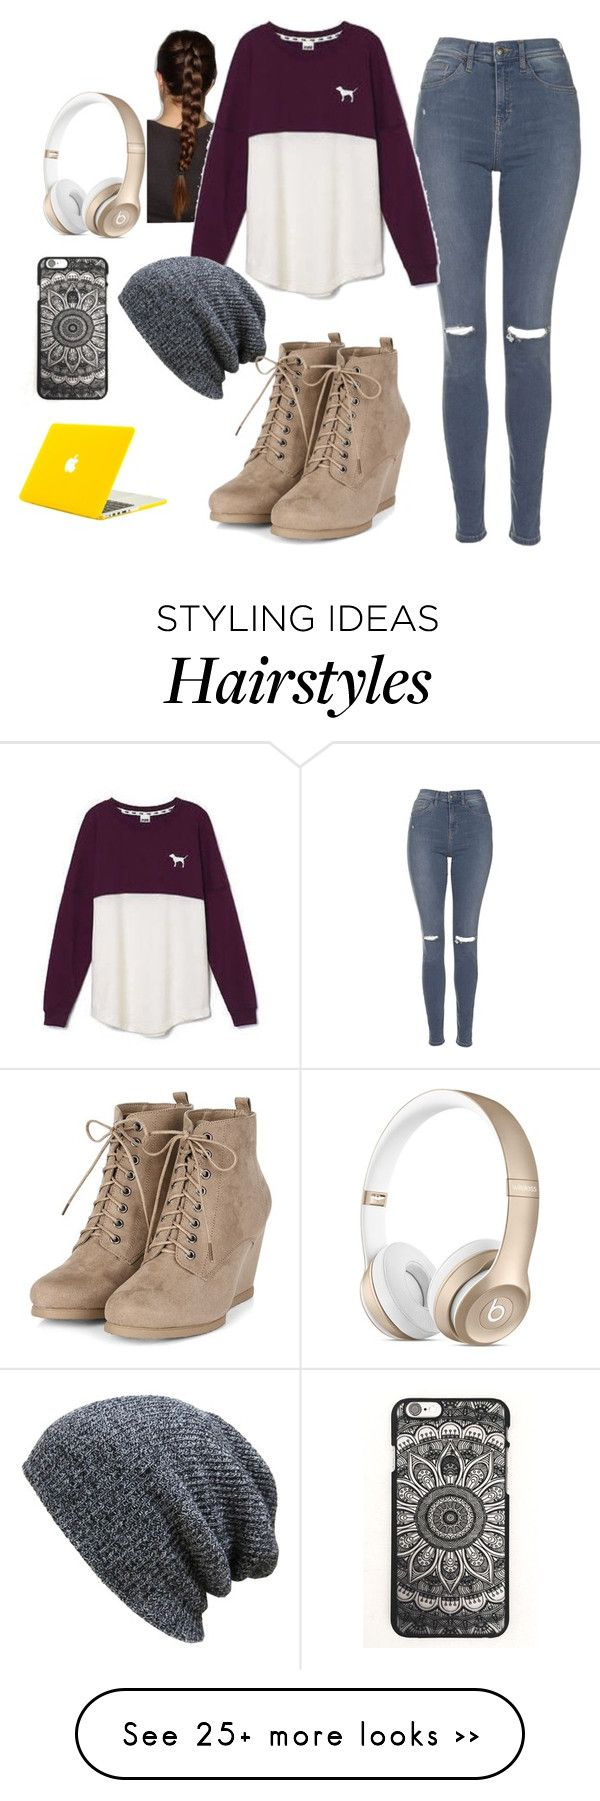 """untitled...."" by cupcakes369 on Polyvore featuring Topshop and Victoria's Secret"